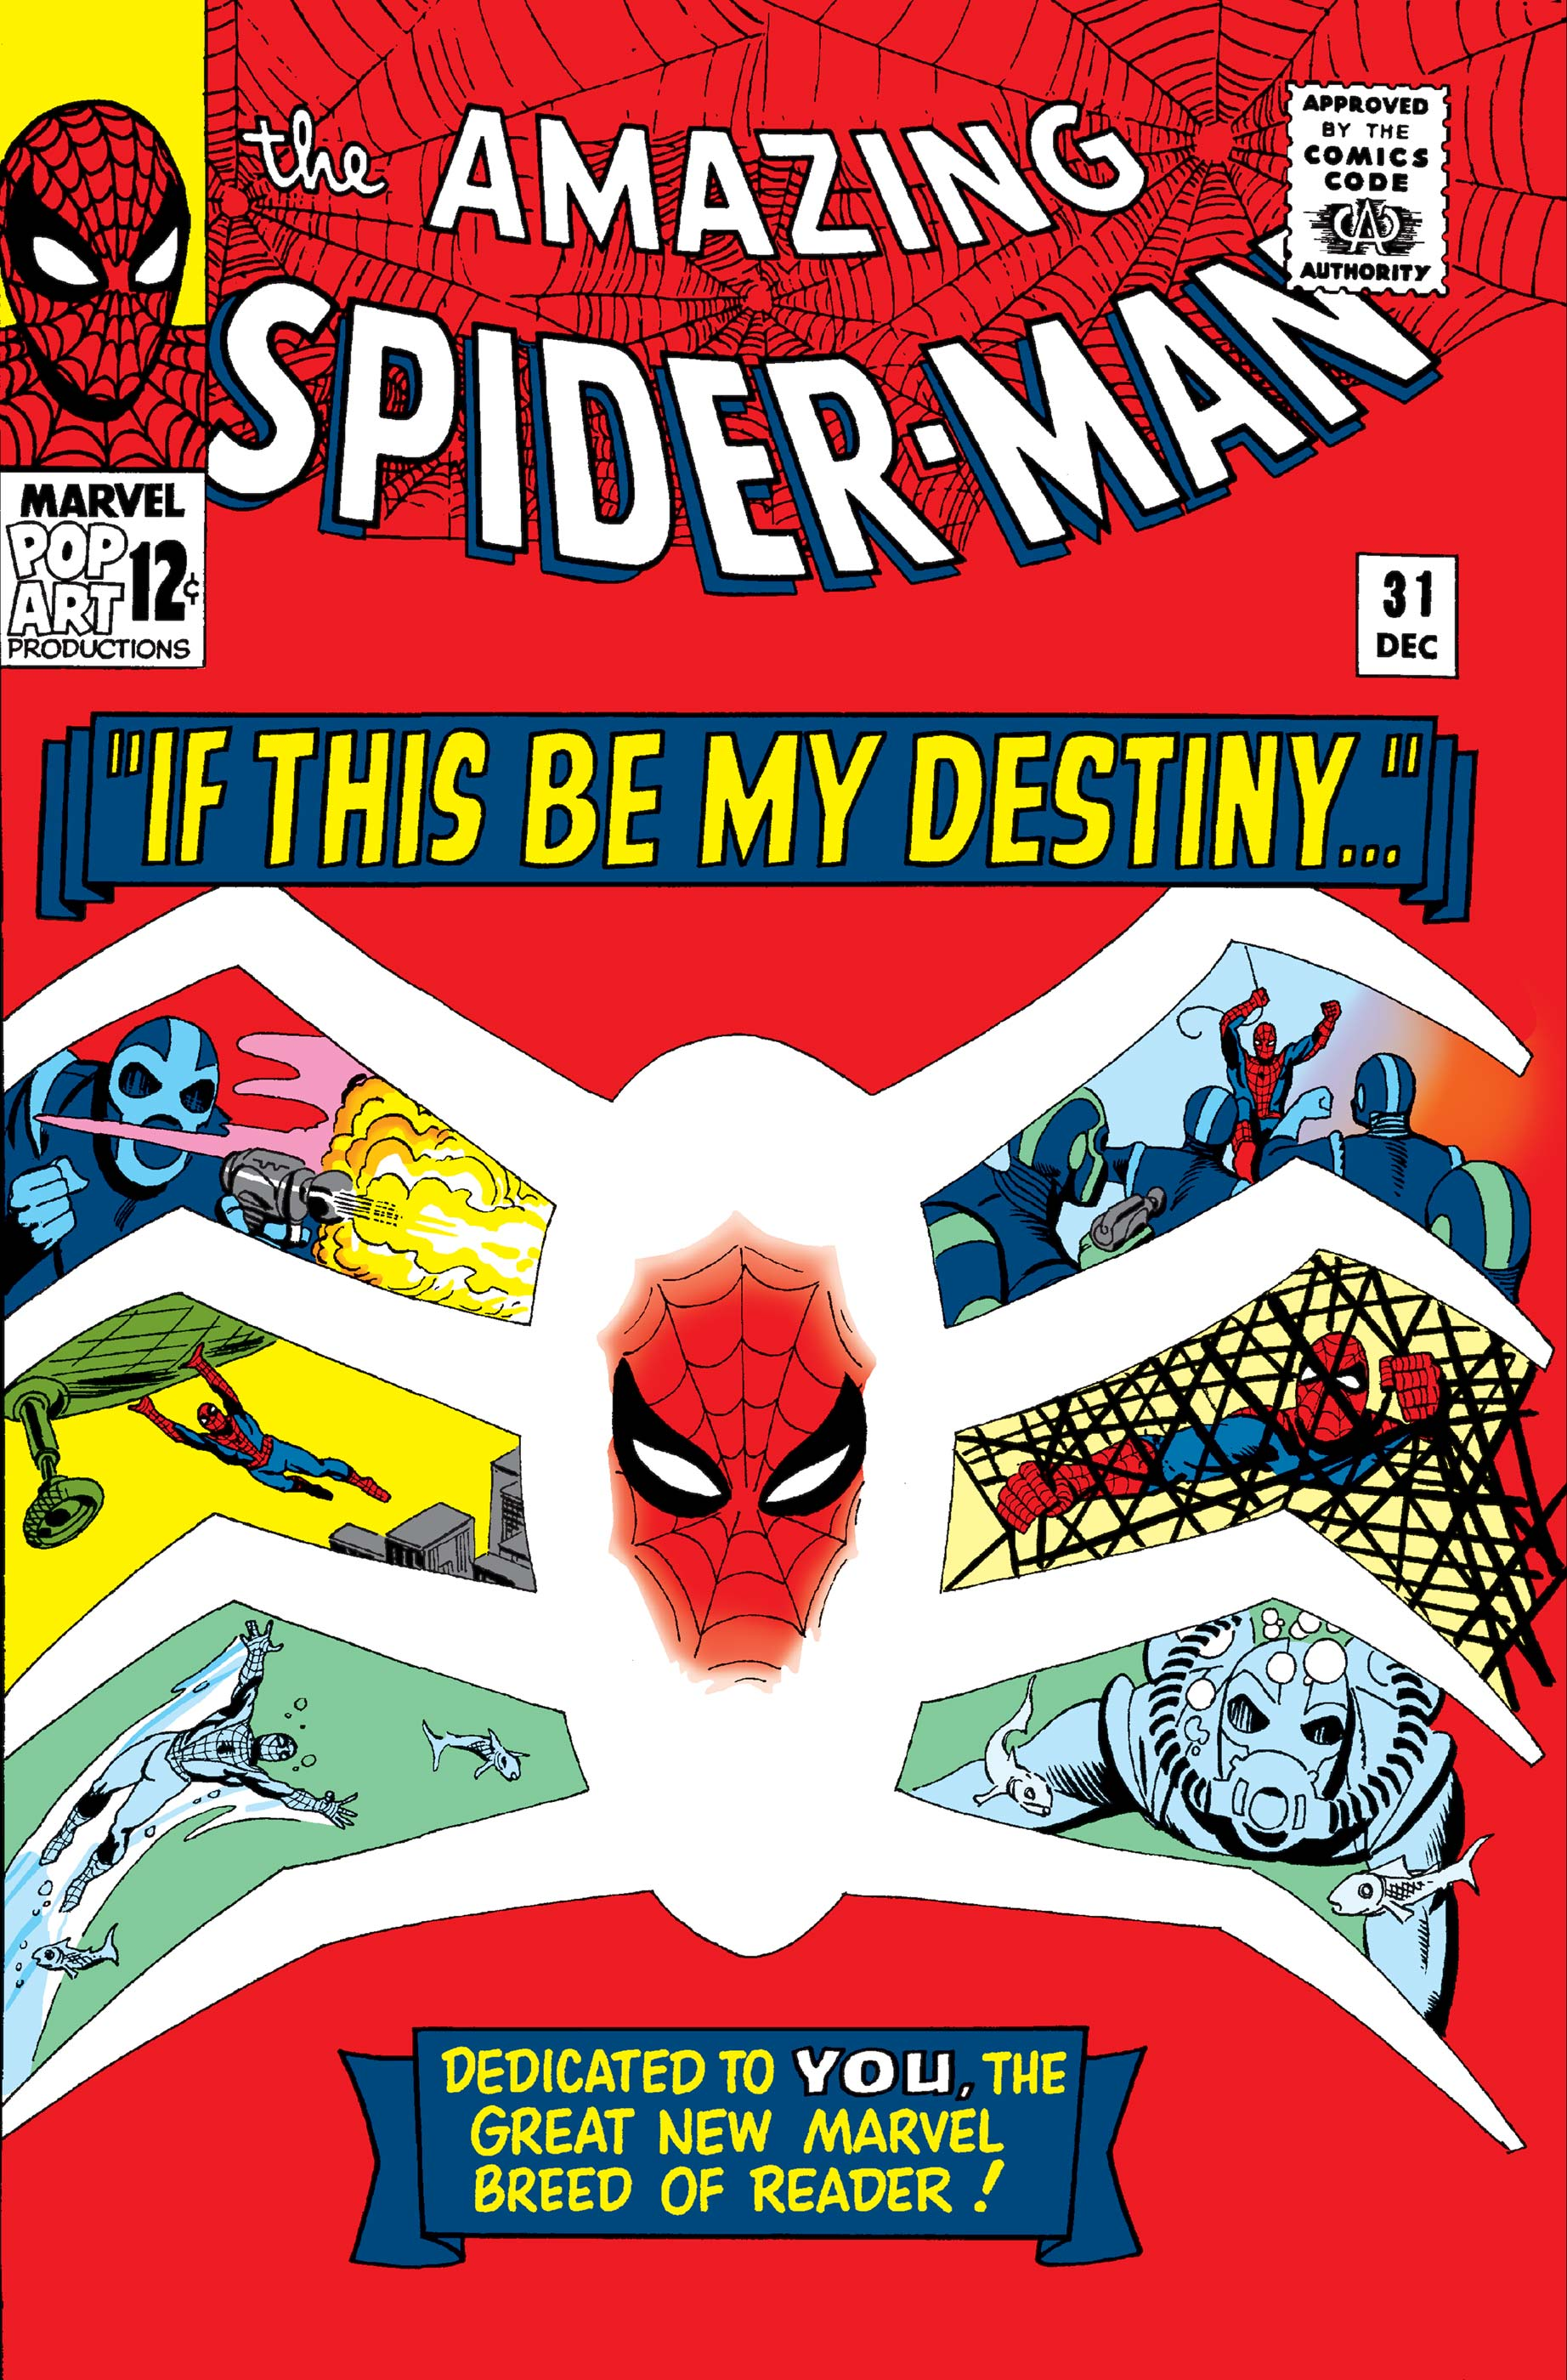 The Amazing Spider-Man (1963) #31